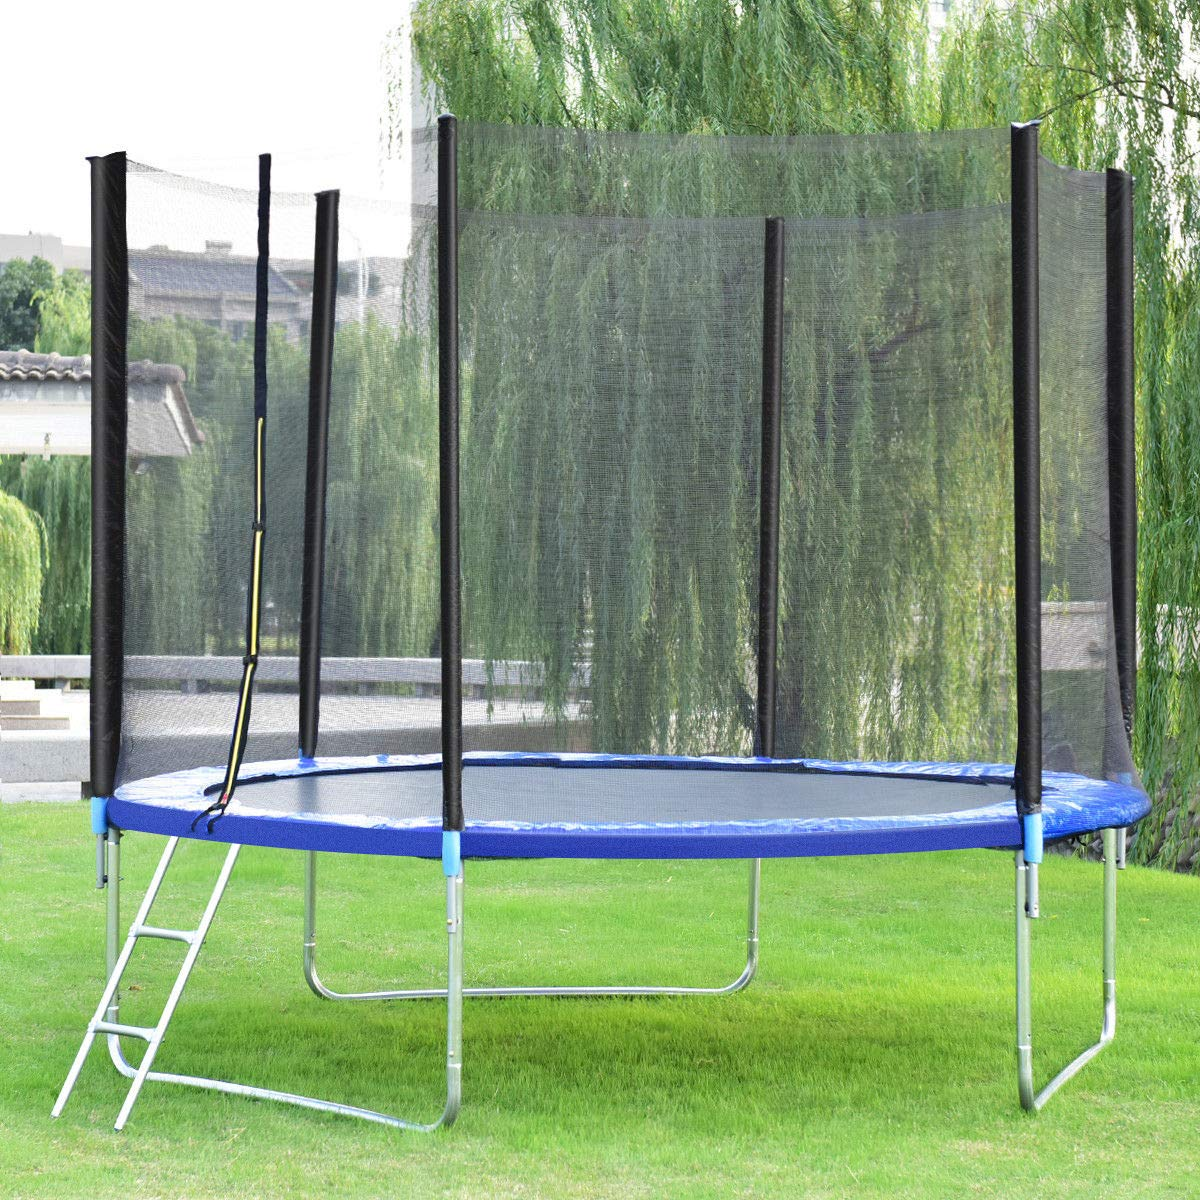 Giantex Trampoline Combo Bounce Jump Safety Enclosure Net W/Spring Pad Ladder (10 FT) by Giantex (Image #3)